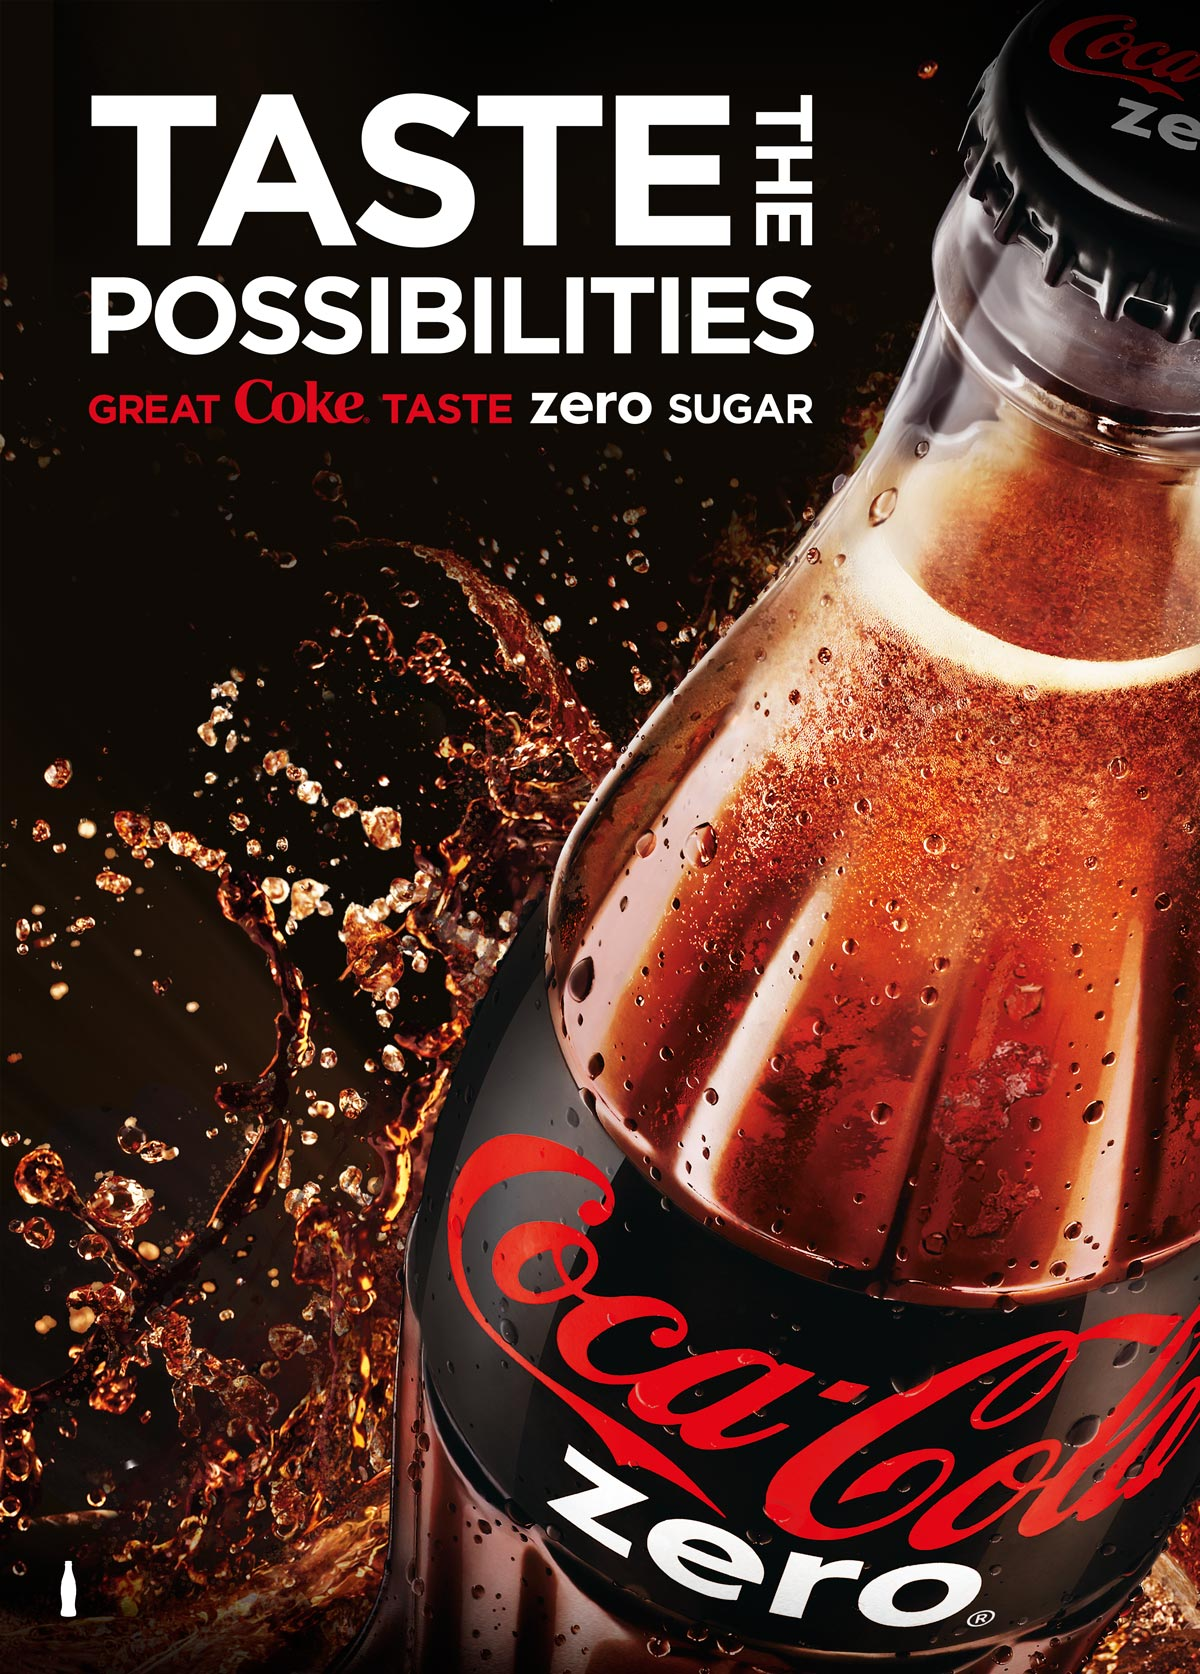 campaign image templates for coke zero